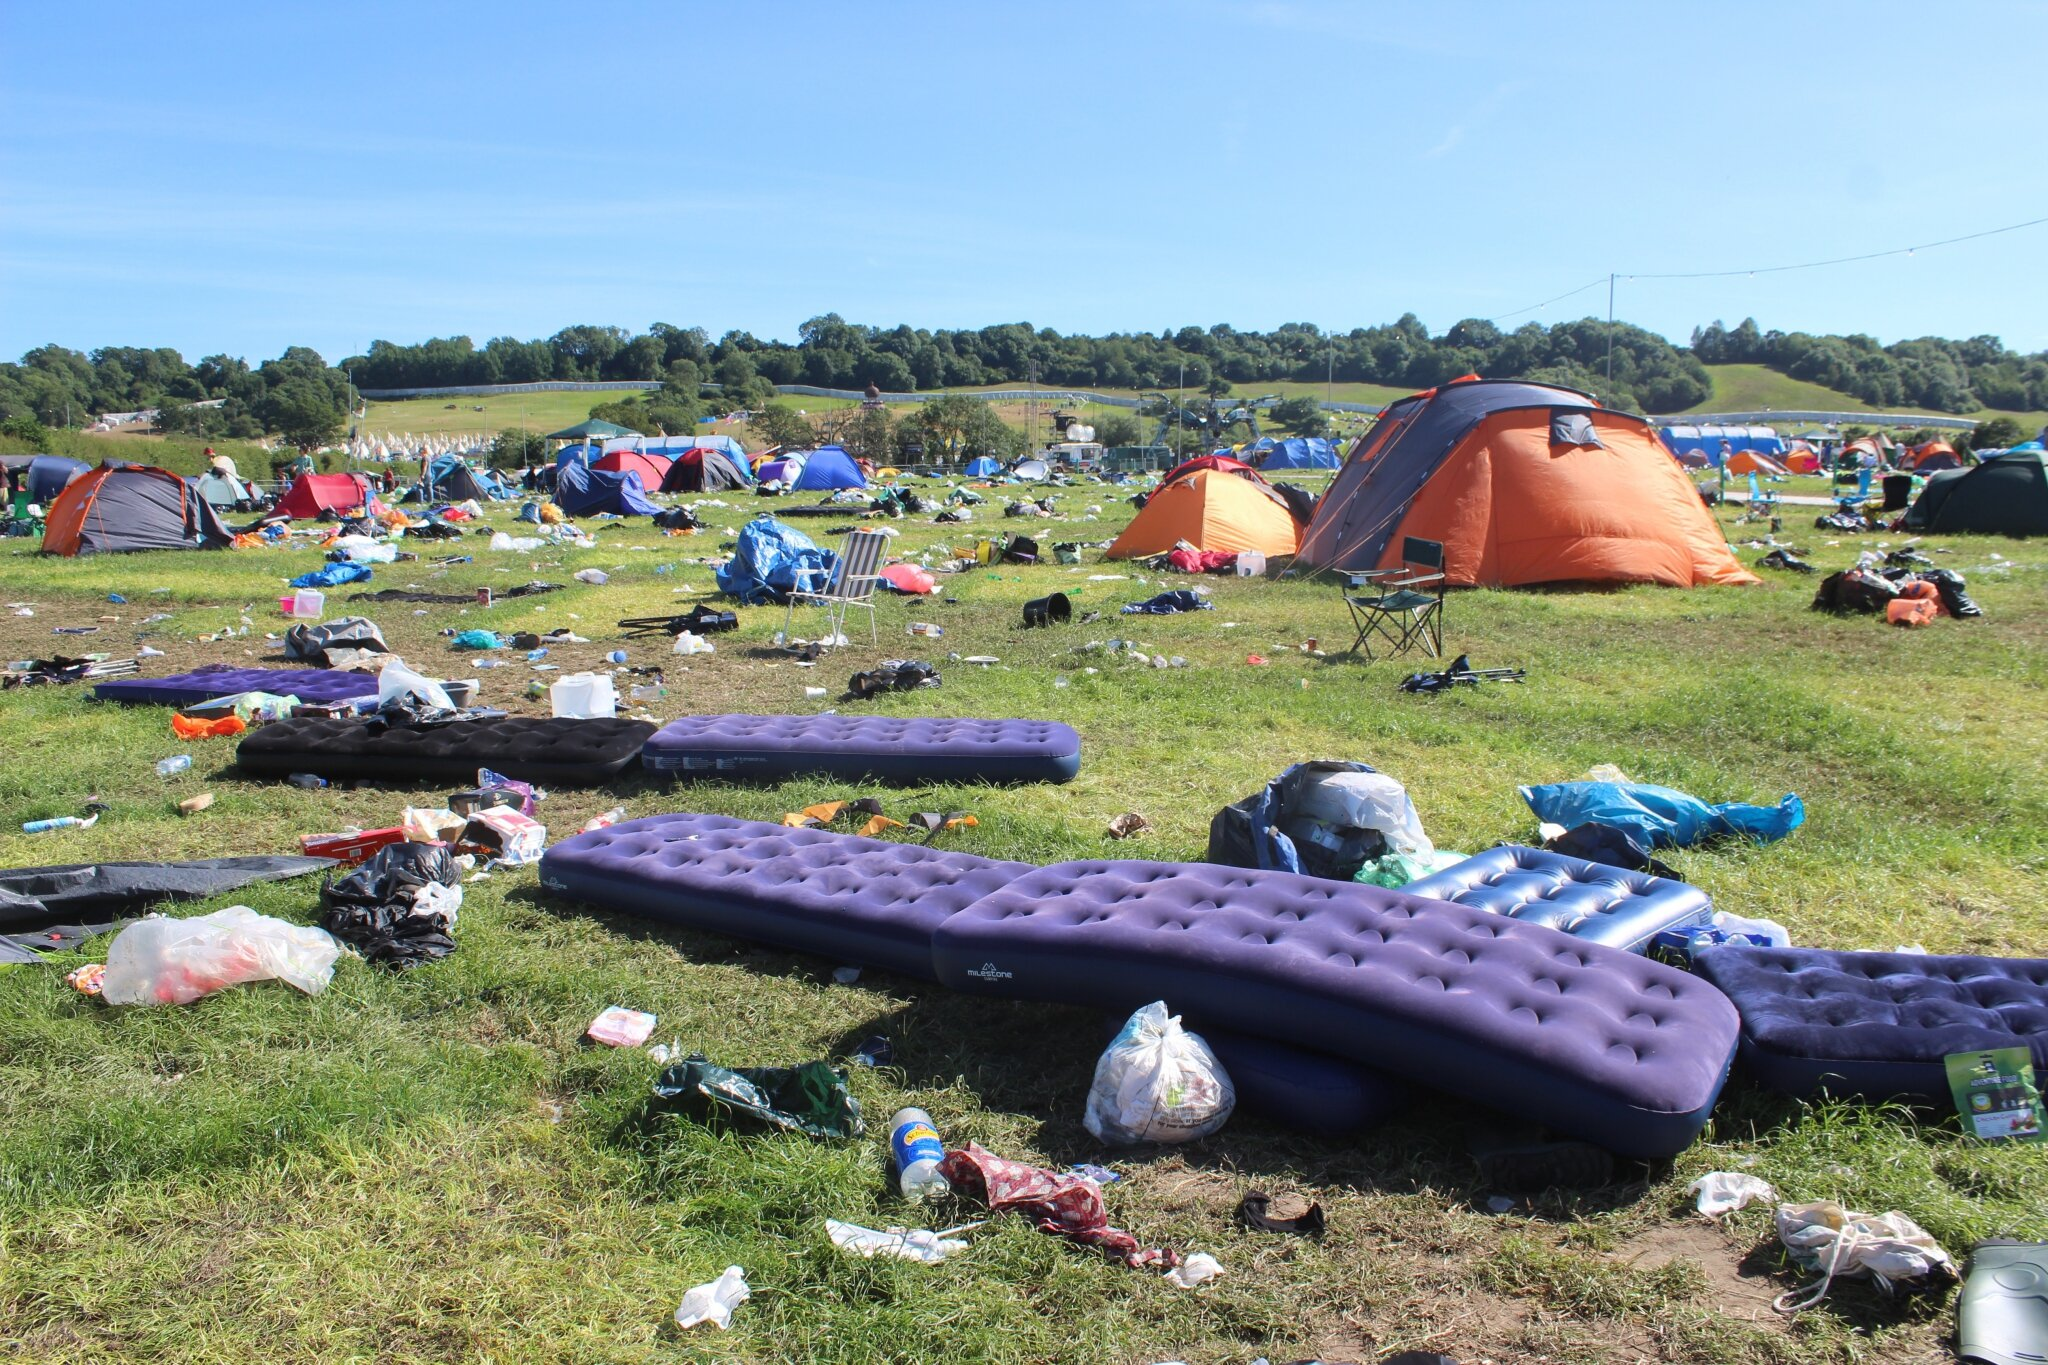 Glastonbury festival en 10 photos • J+5 • lundi 29 juin 2015